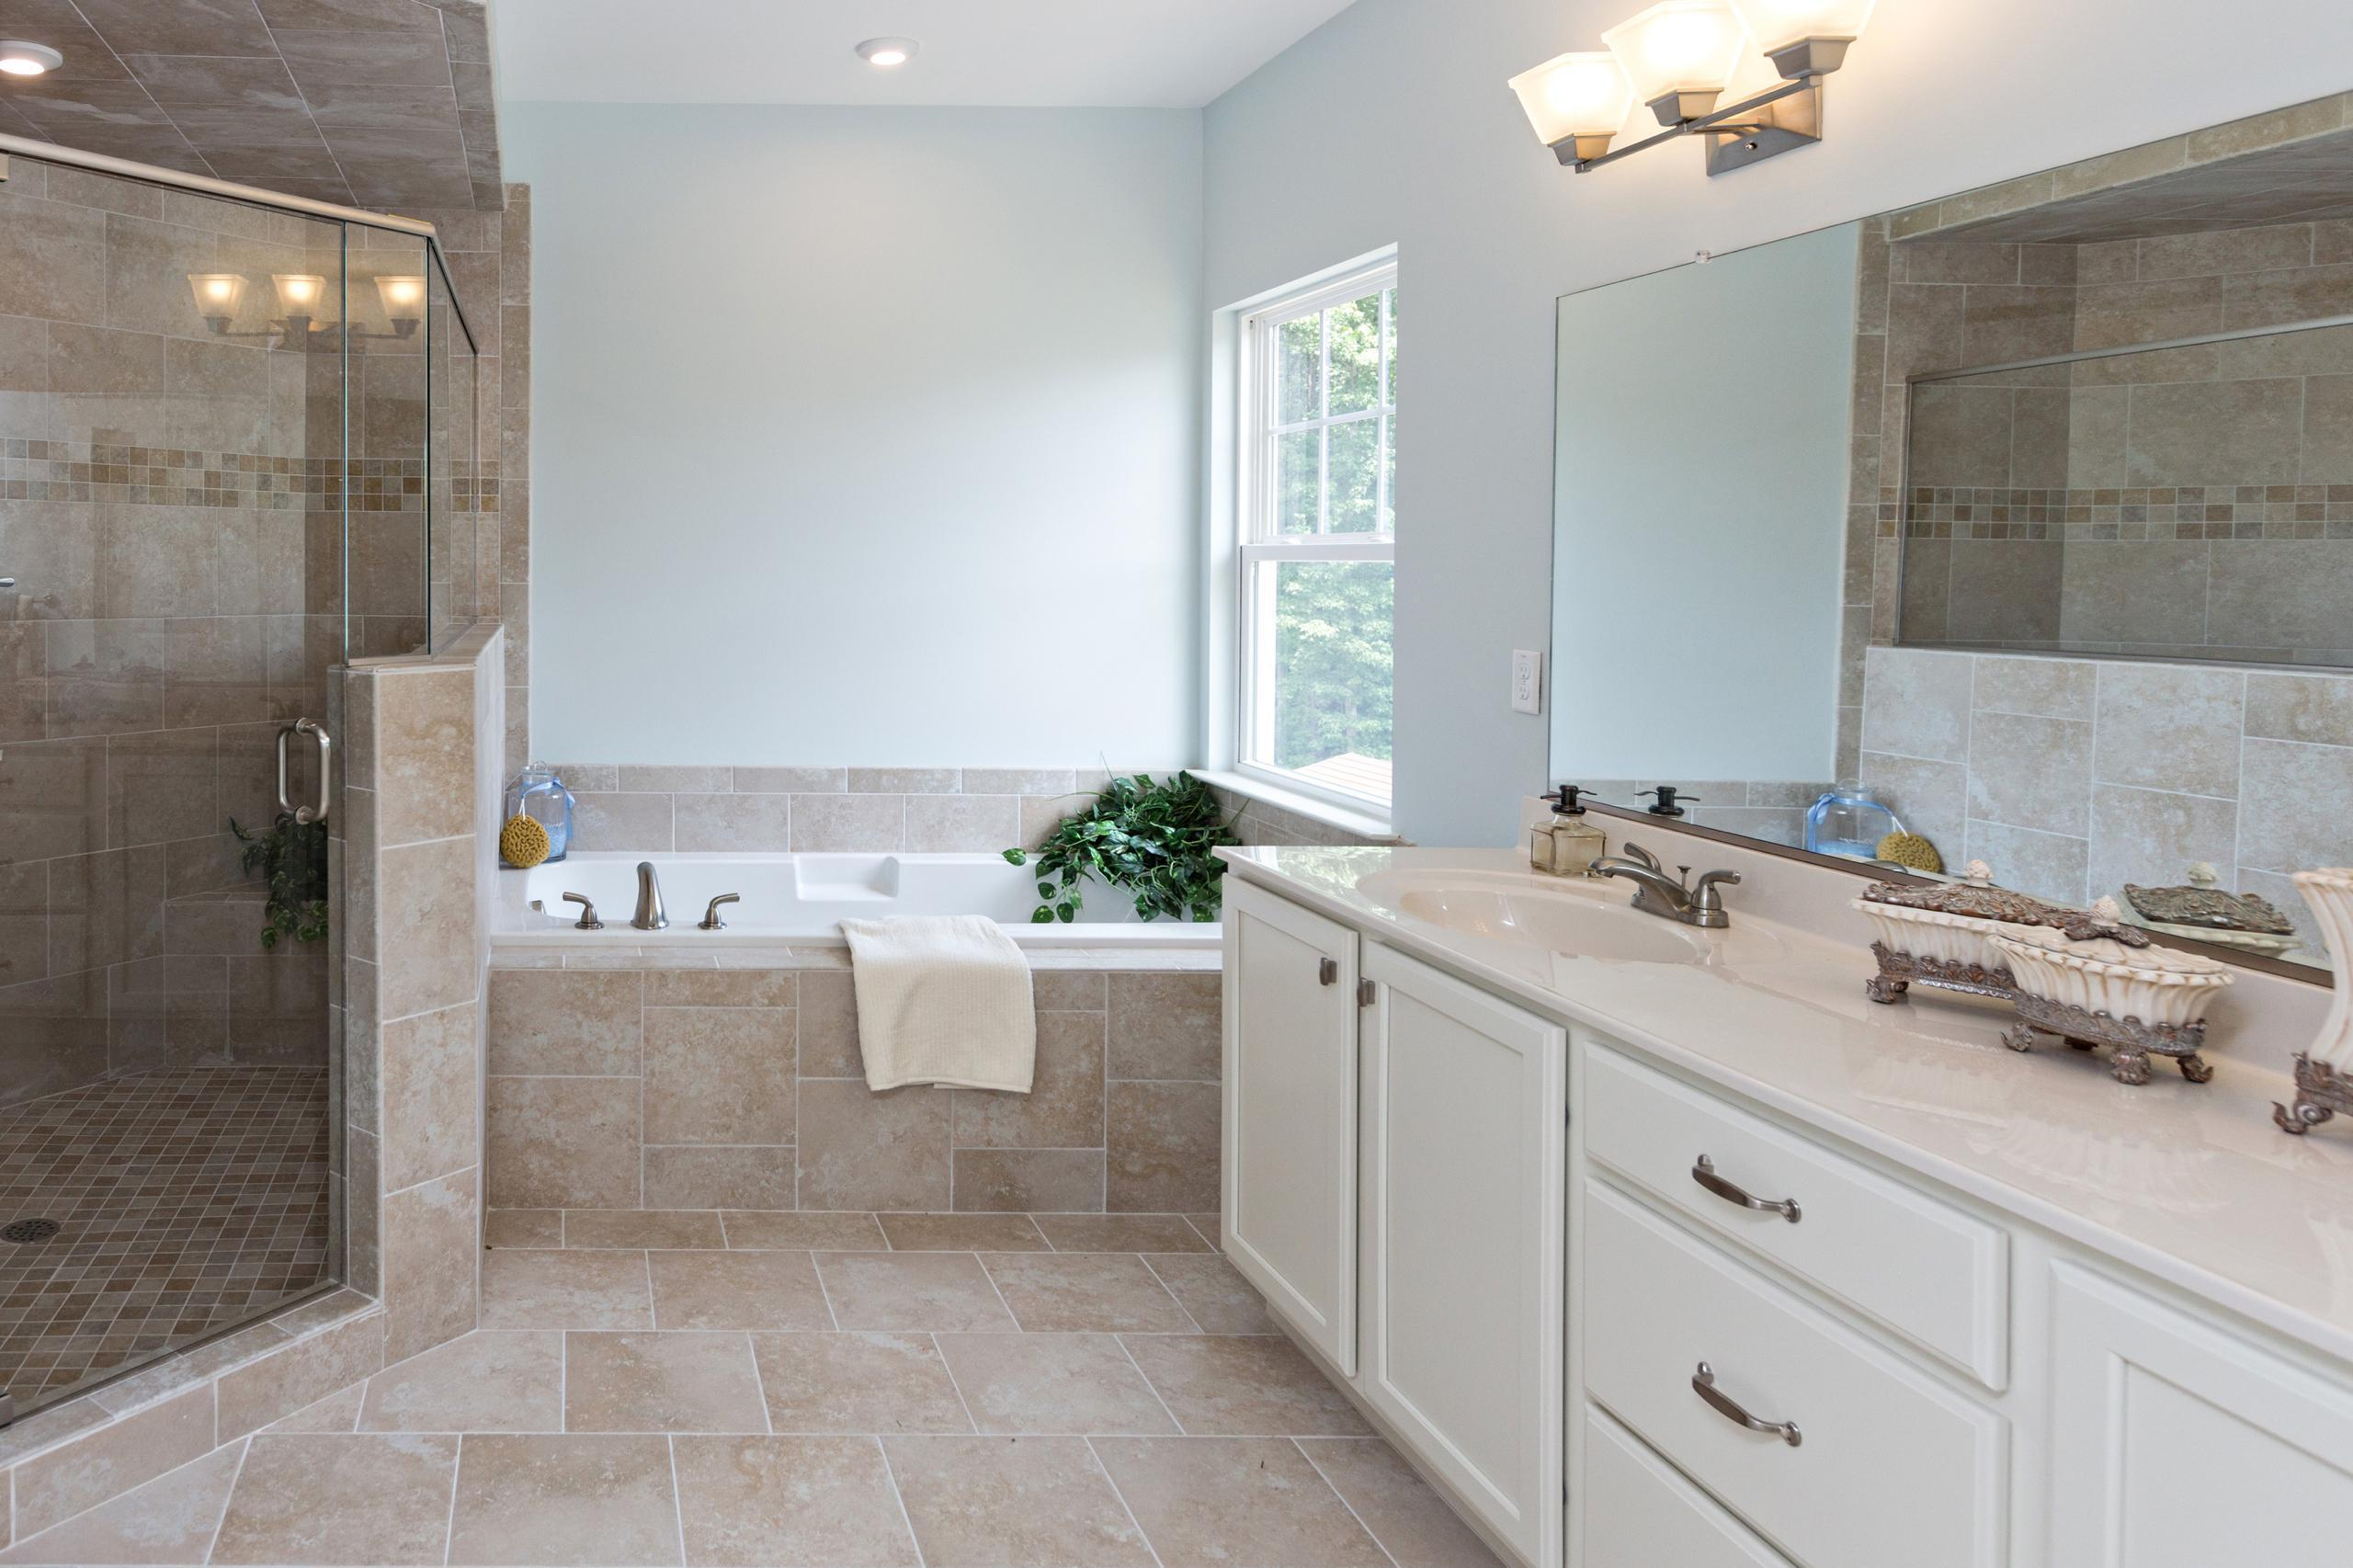 Bathroom featured in The Plum Meadow Cottage By Stephen Alexander Homes in Outer Banks, NC